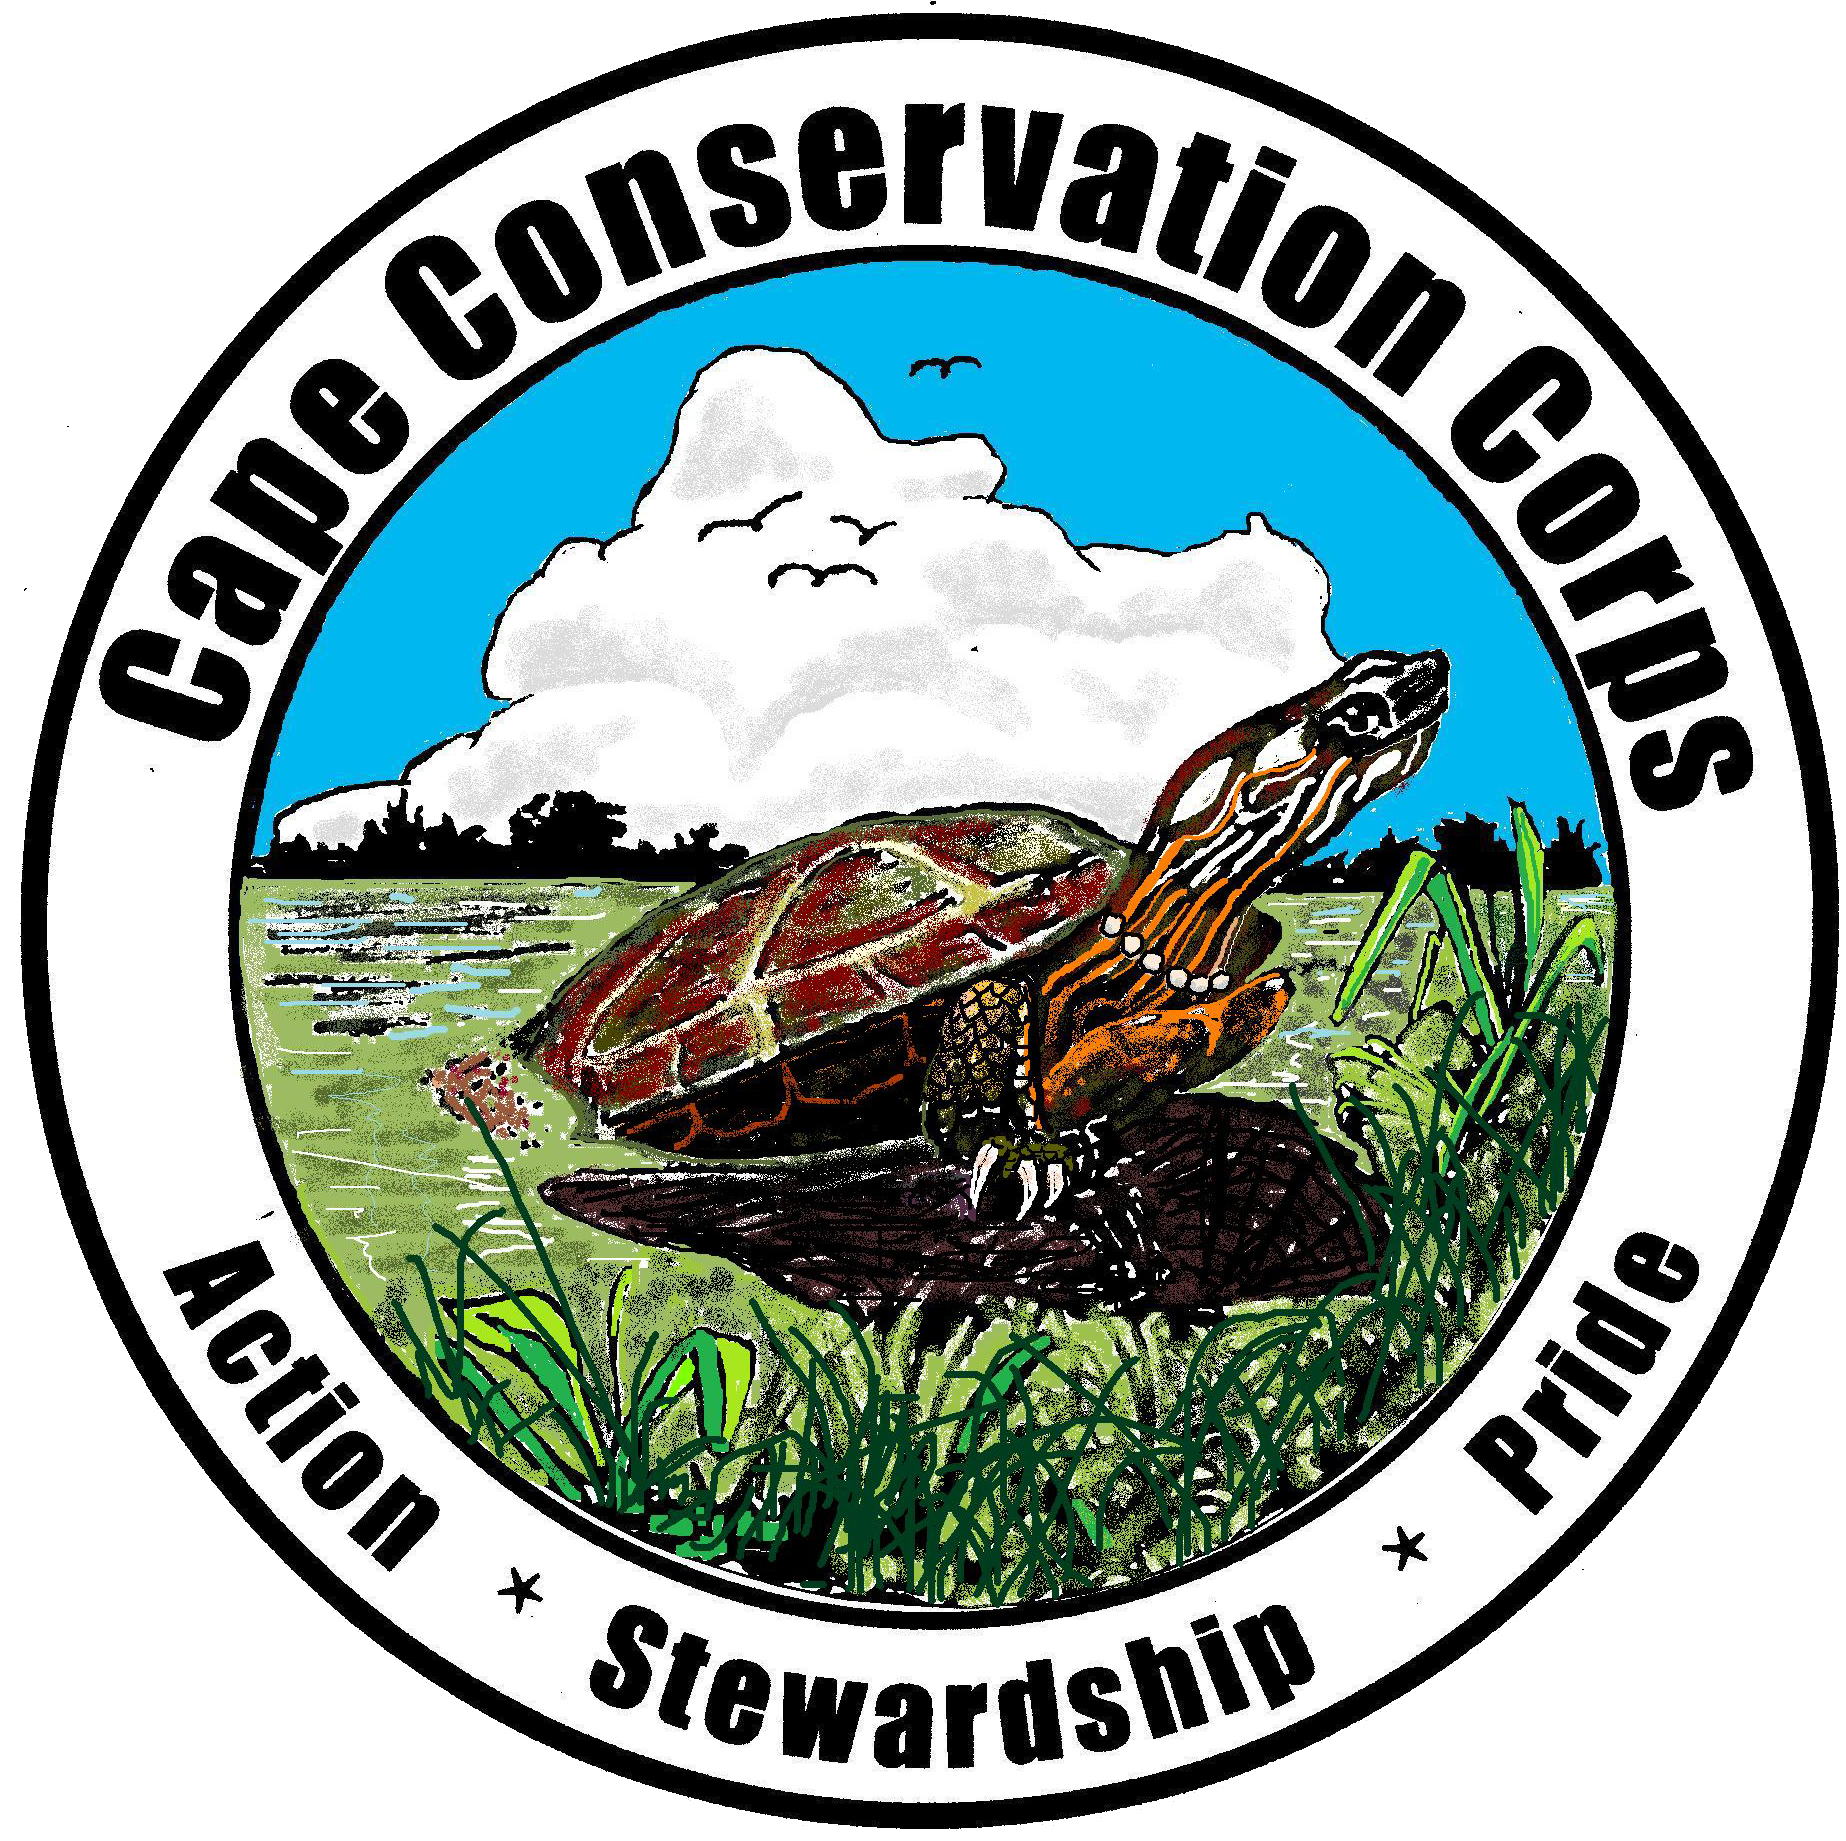 Cape Conservation Corps